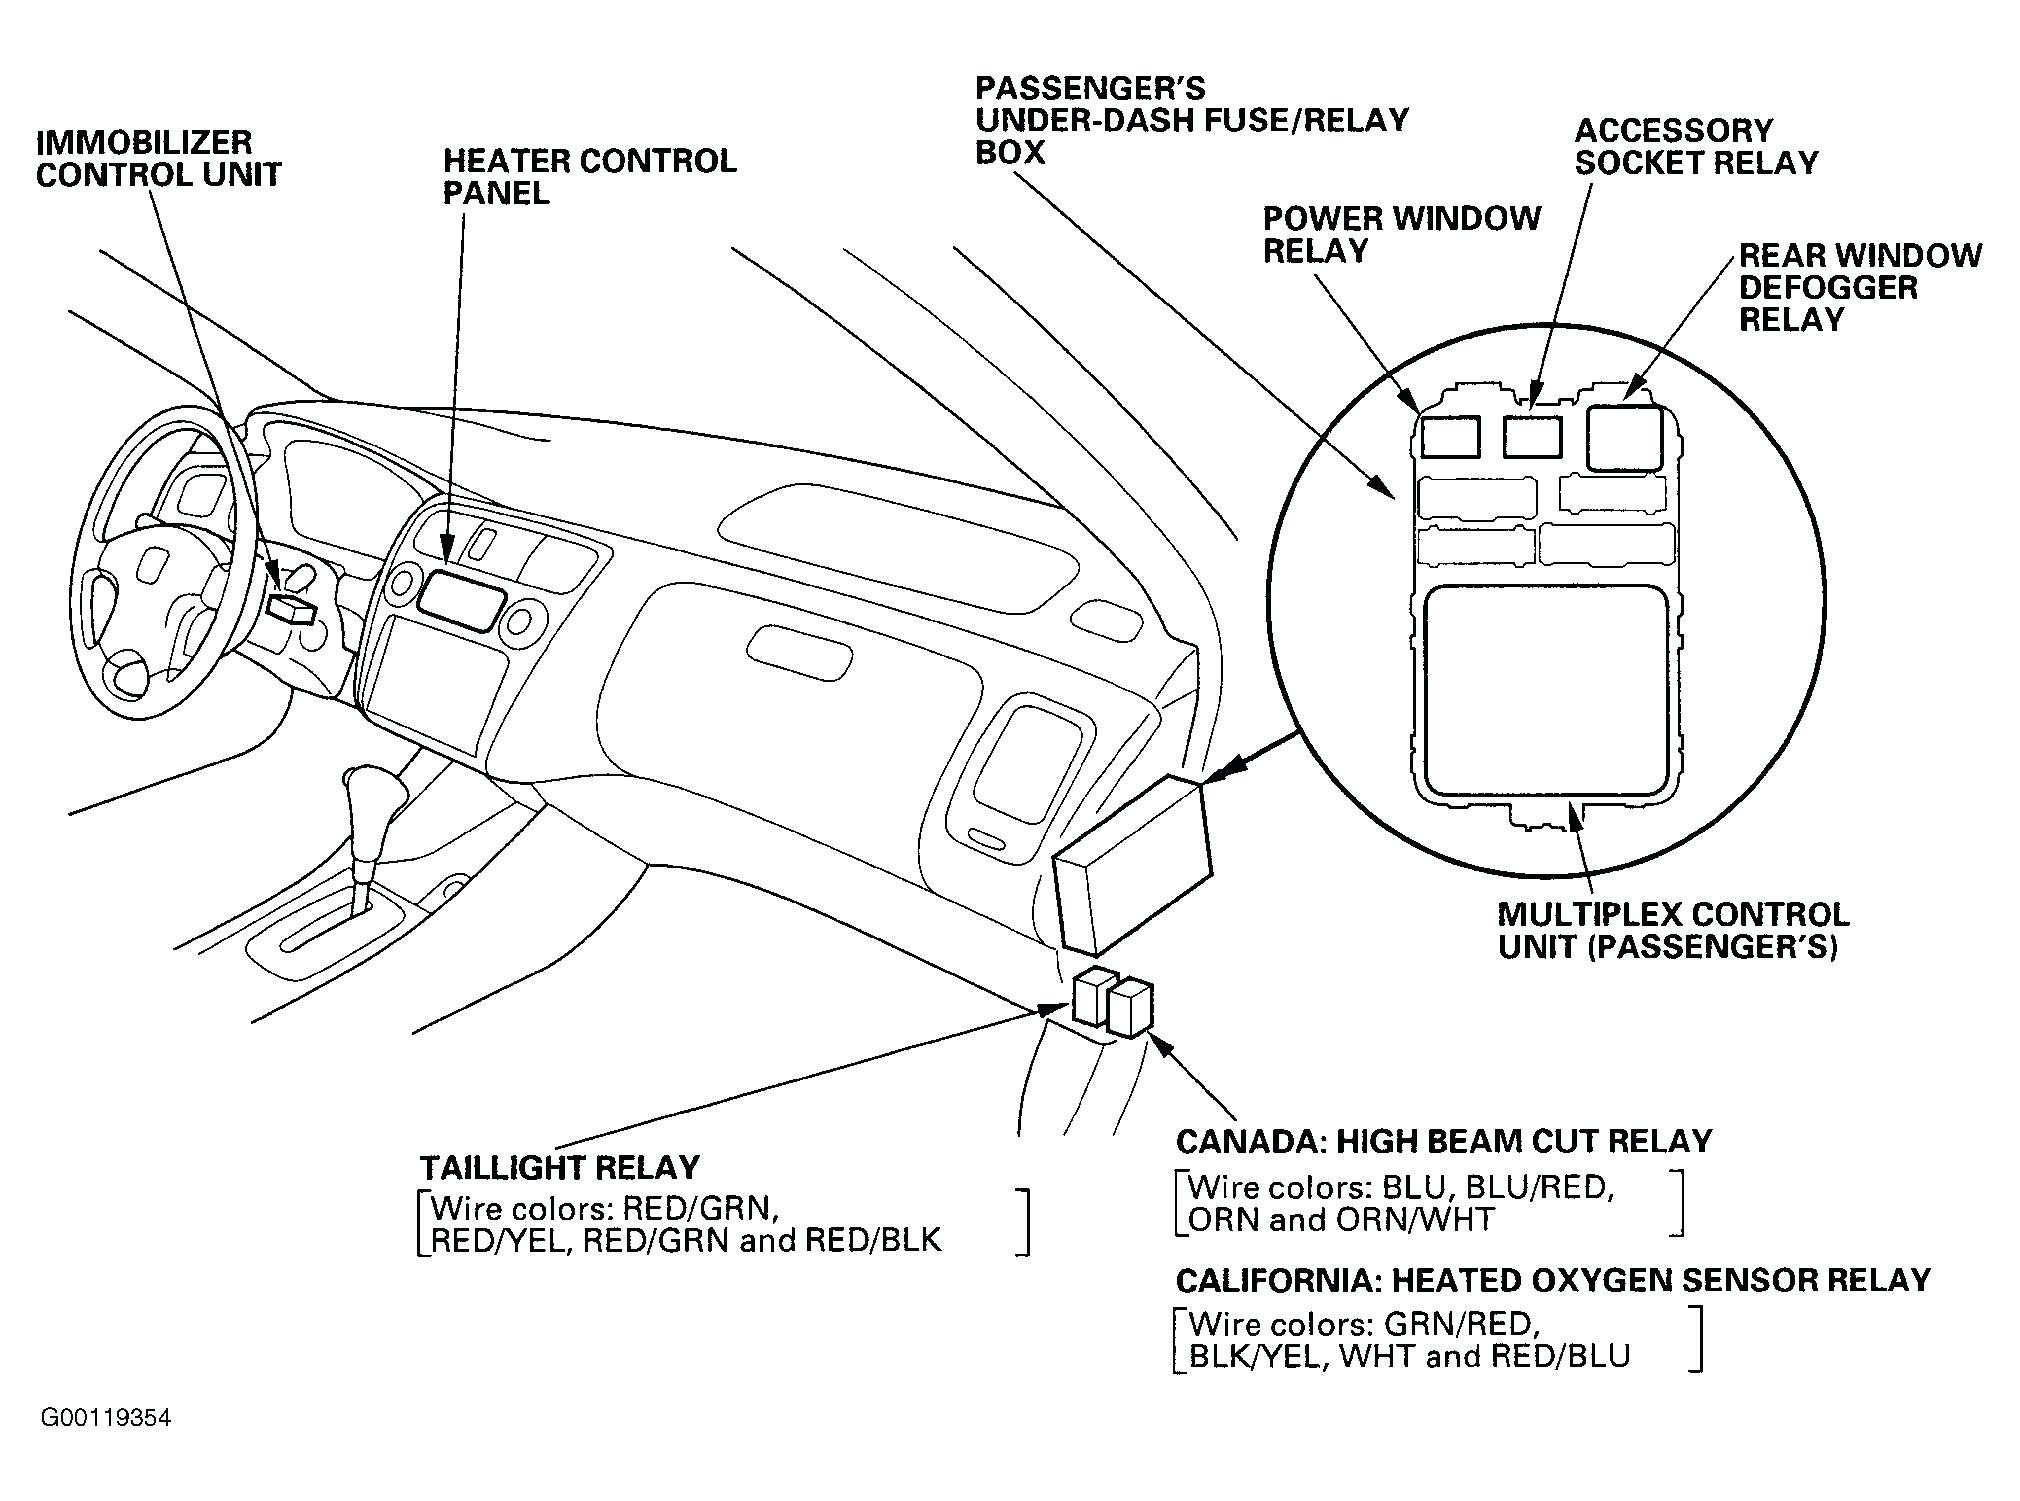 1998 Nissan Pathfinder Fuse Box Diagram Improve Wiring 98 General Information U2022 Rh Velvetfive Co Uk Frontier